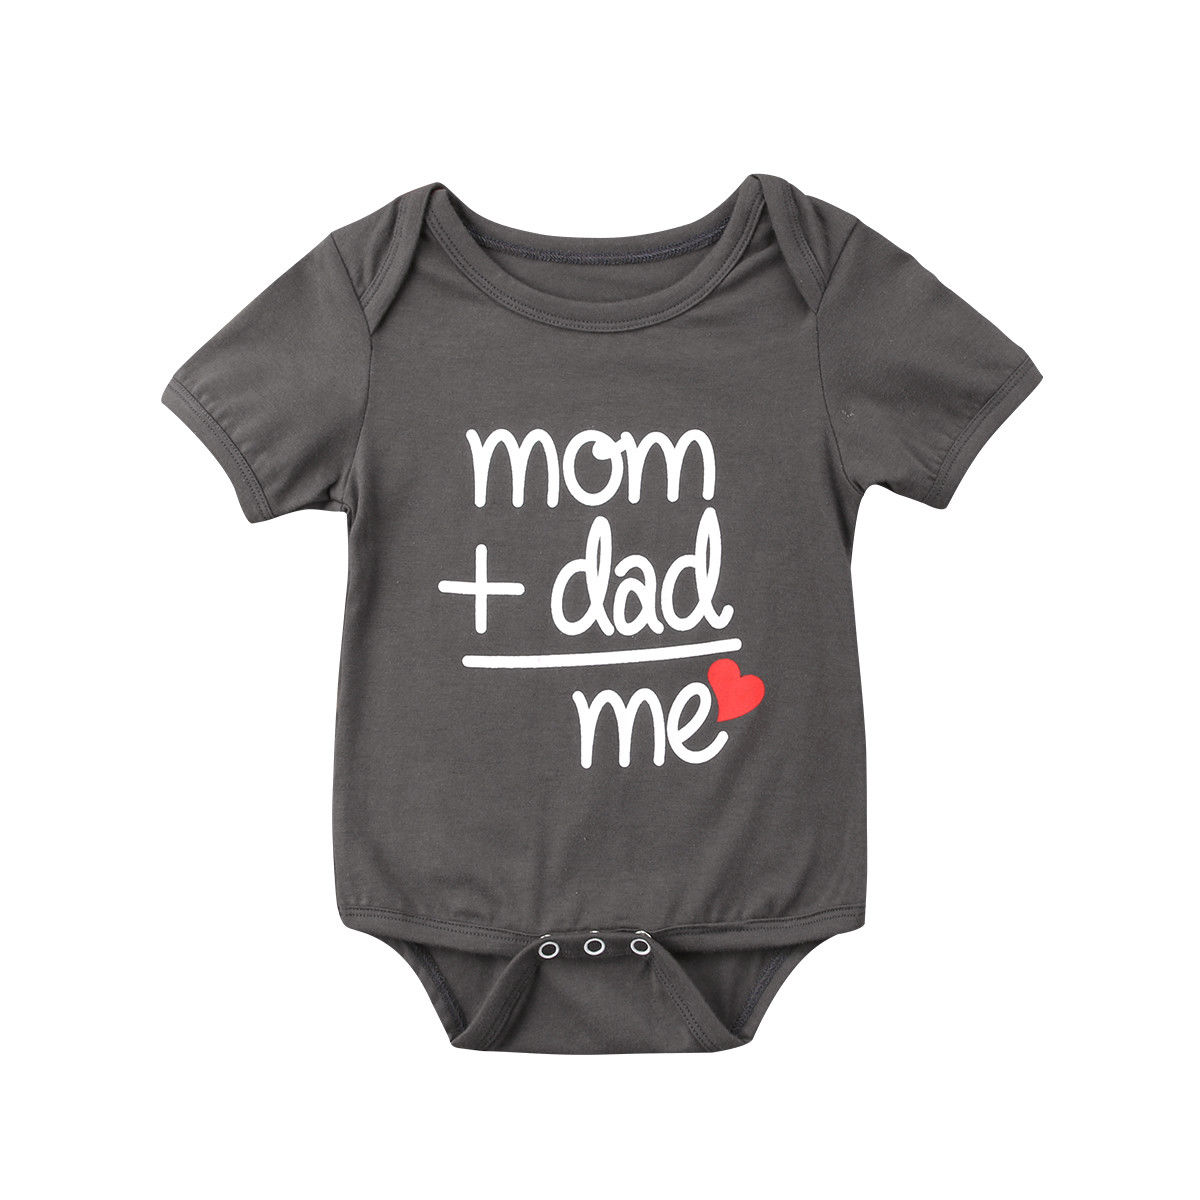 Summer Newborn Baby Clothes Boy Girl Kids Cotton Bodysuit Funny Cute Kawaii Outfits Infant Short sleeve Daddy gift все цены